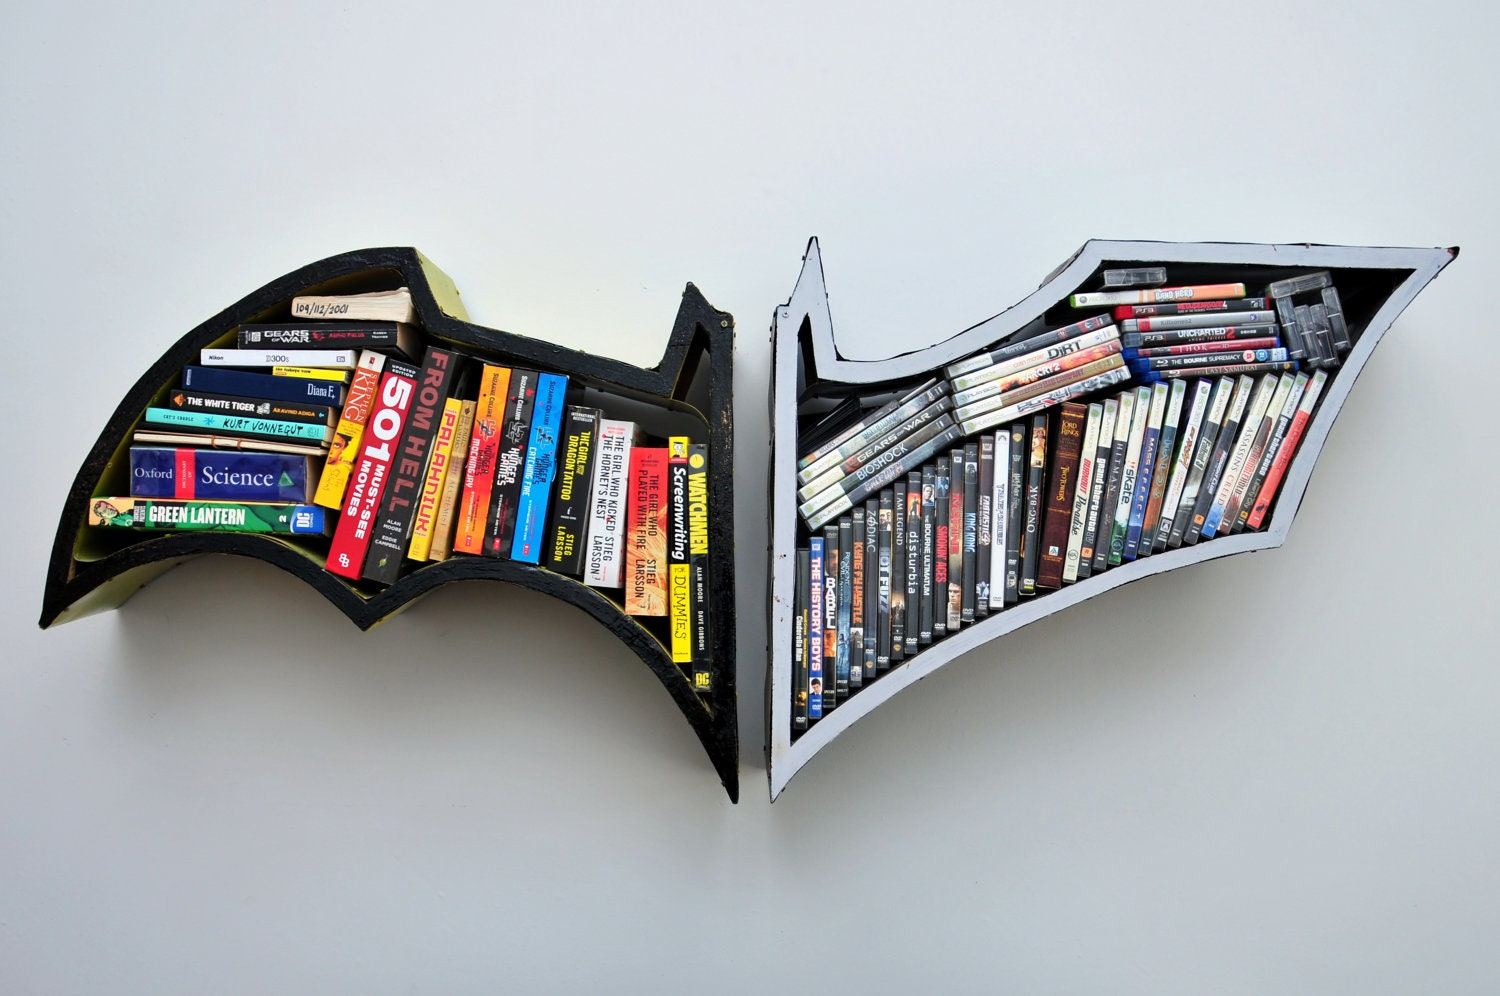 Batman Bookshelves